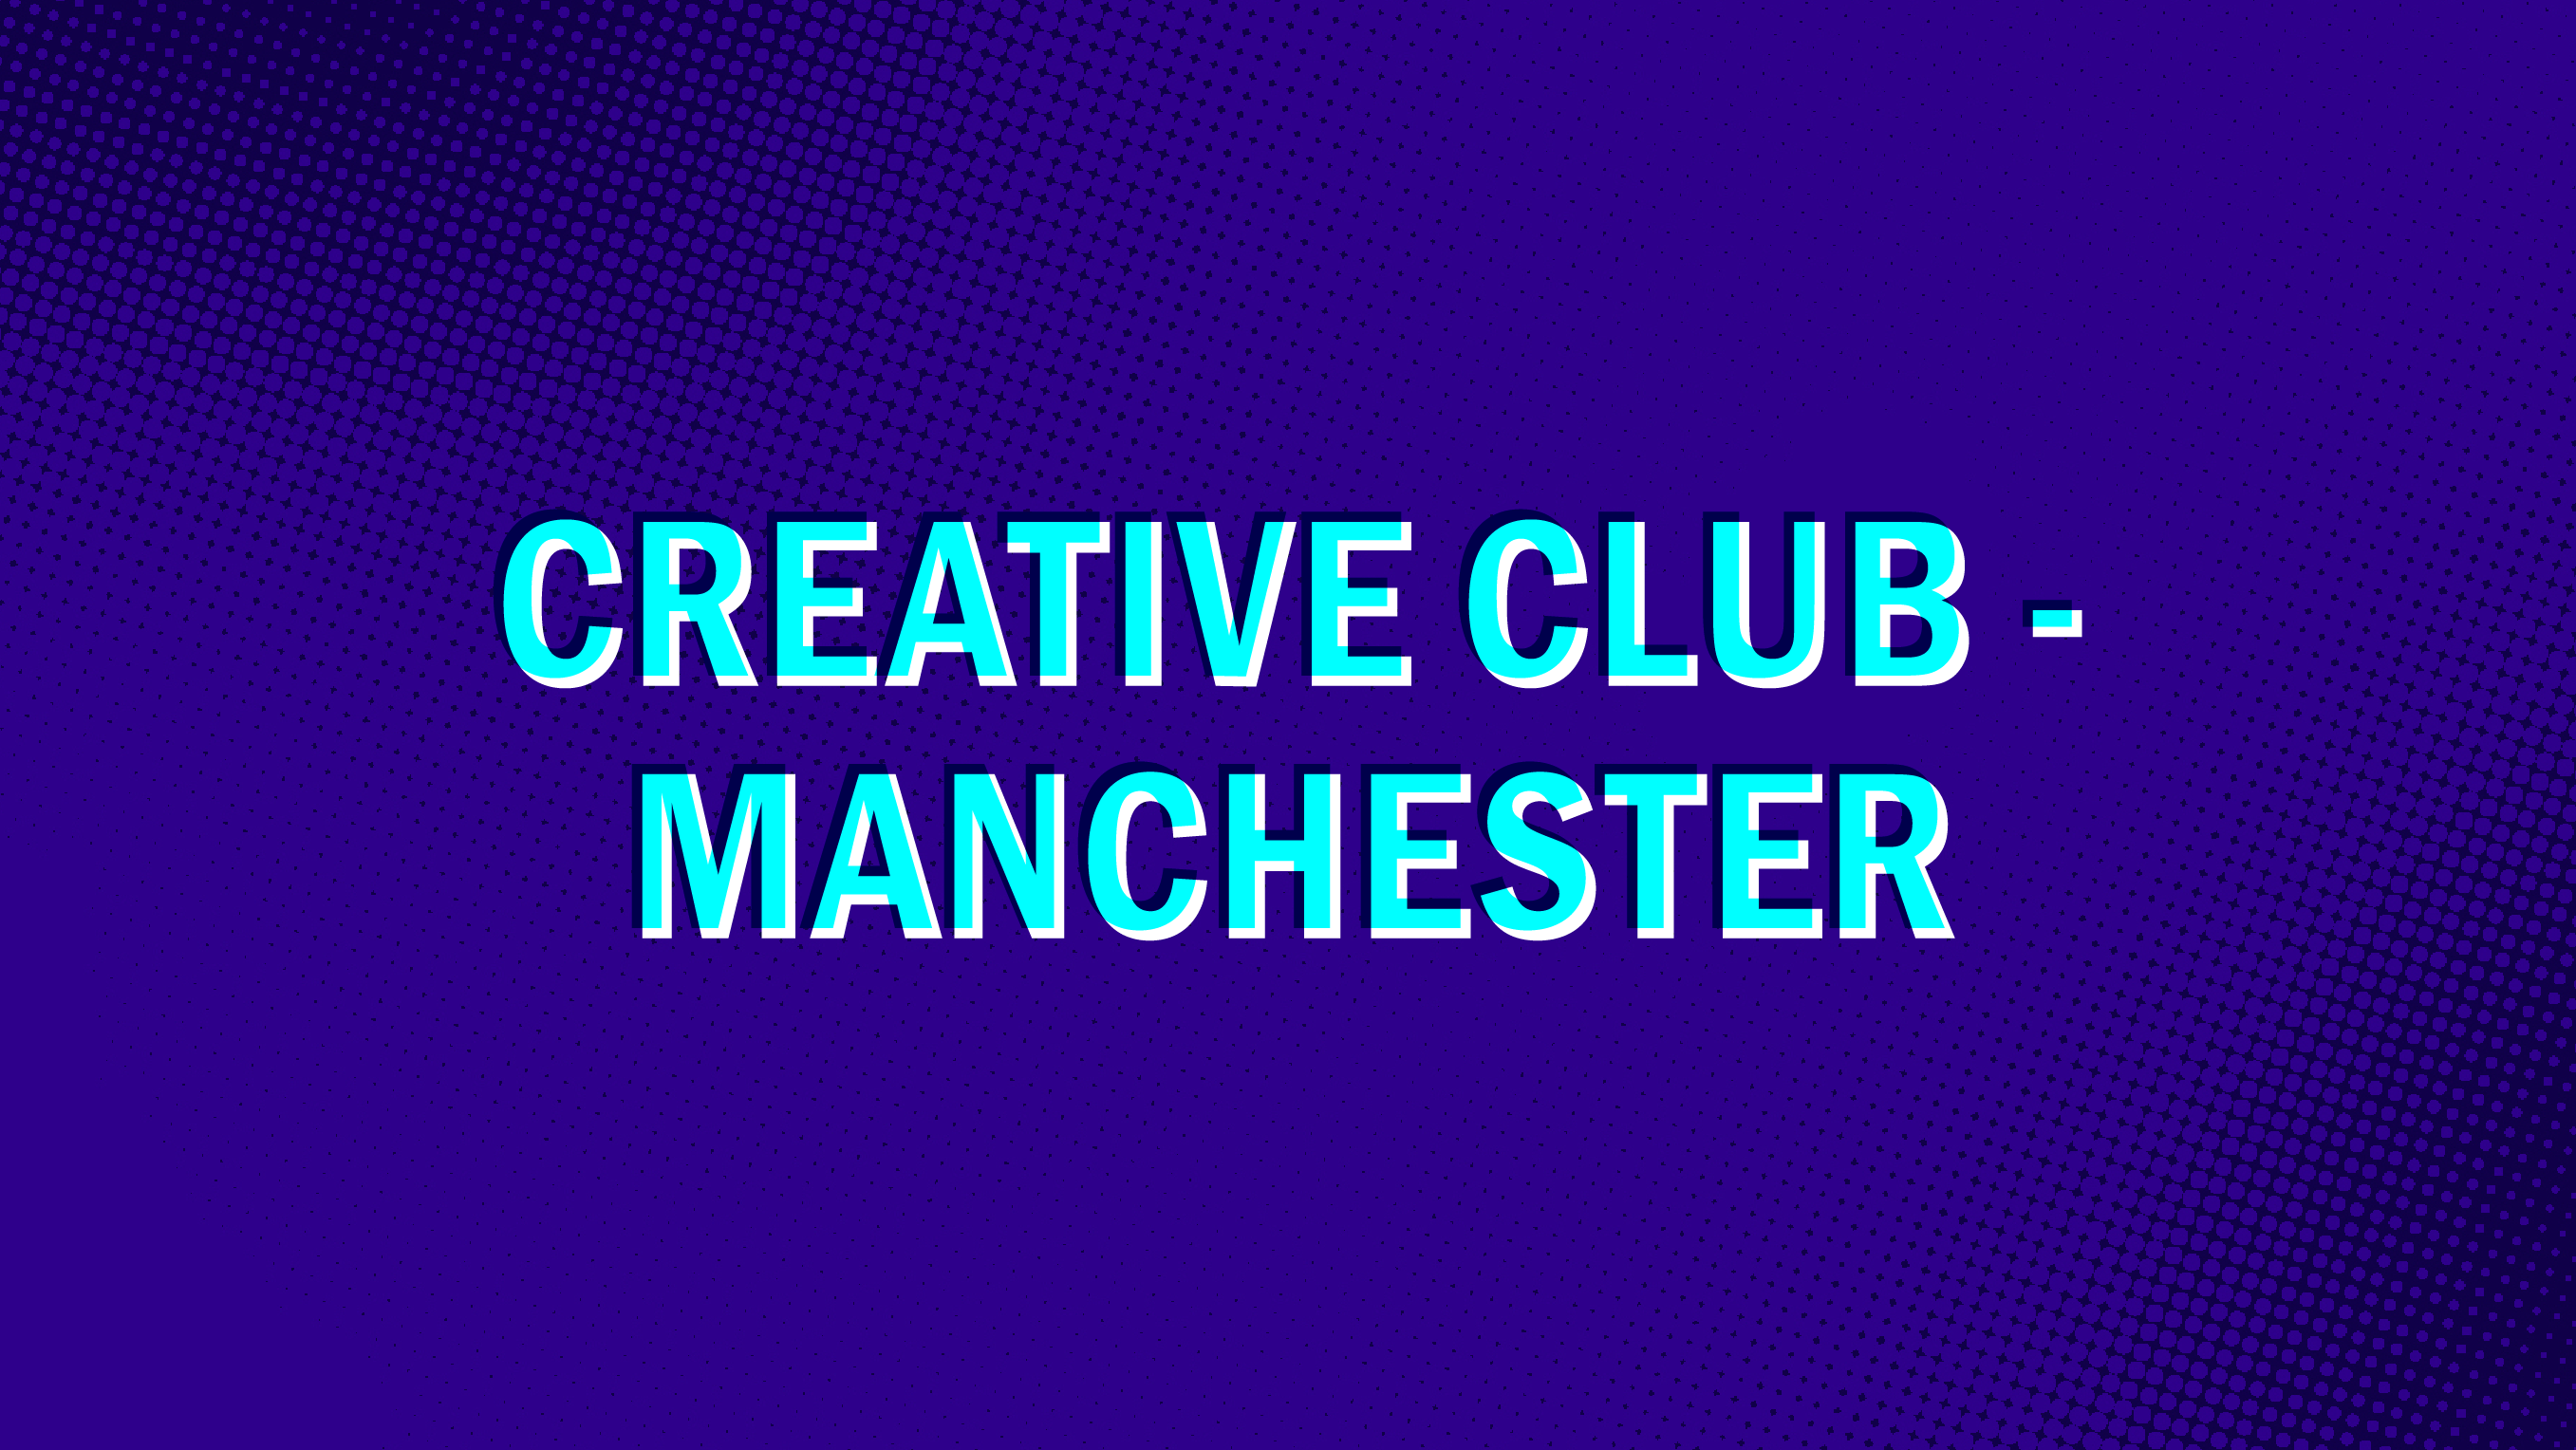 Creative club - Manchester.png